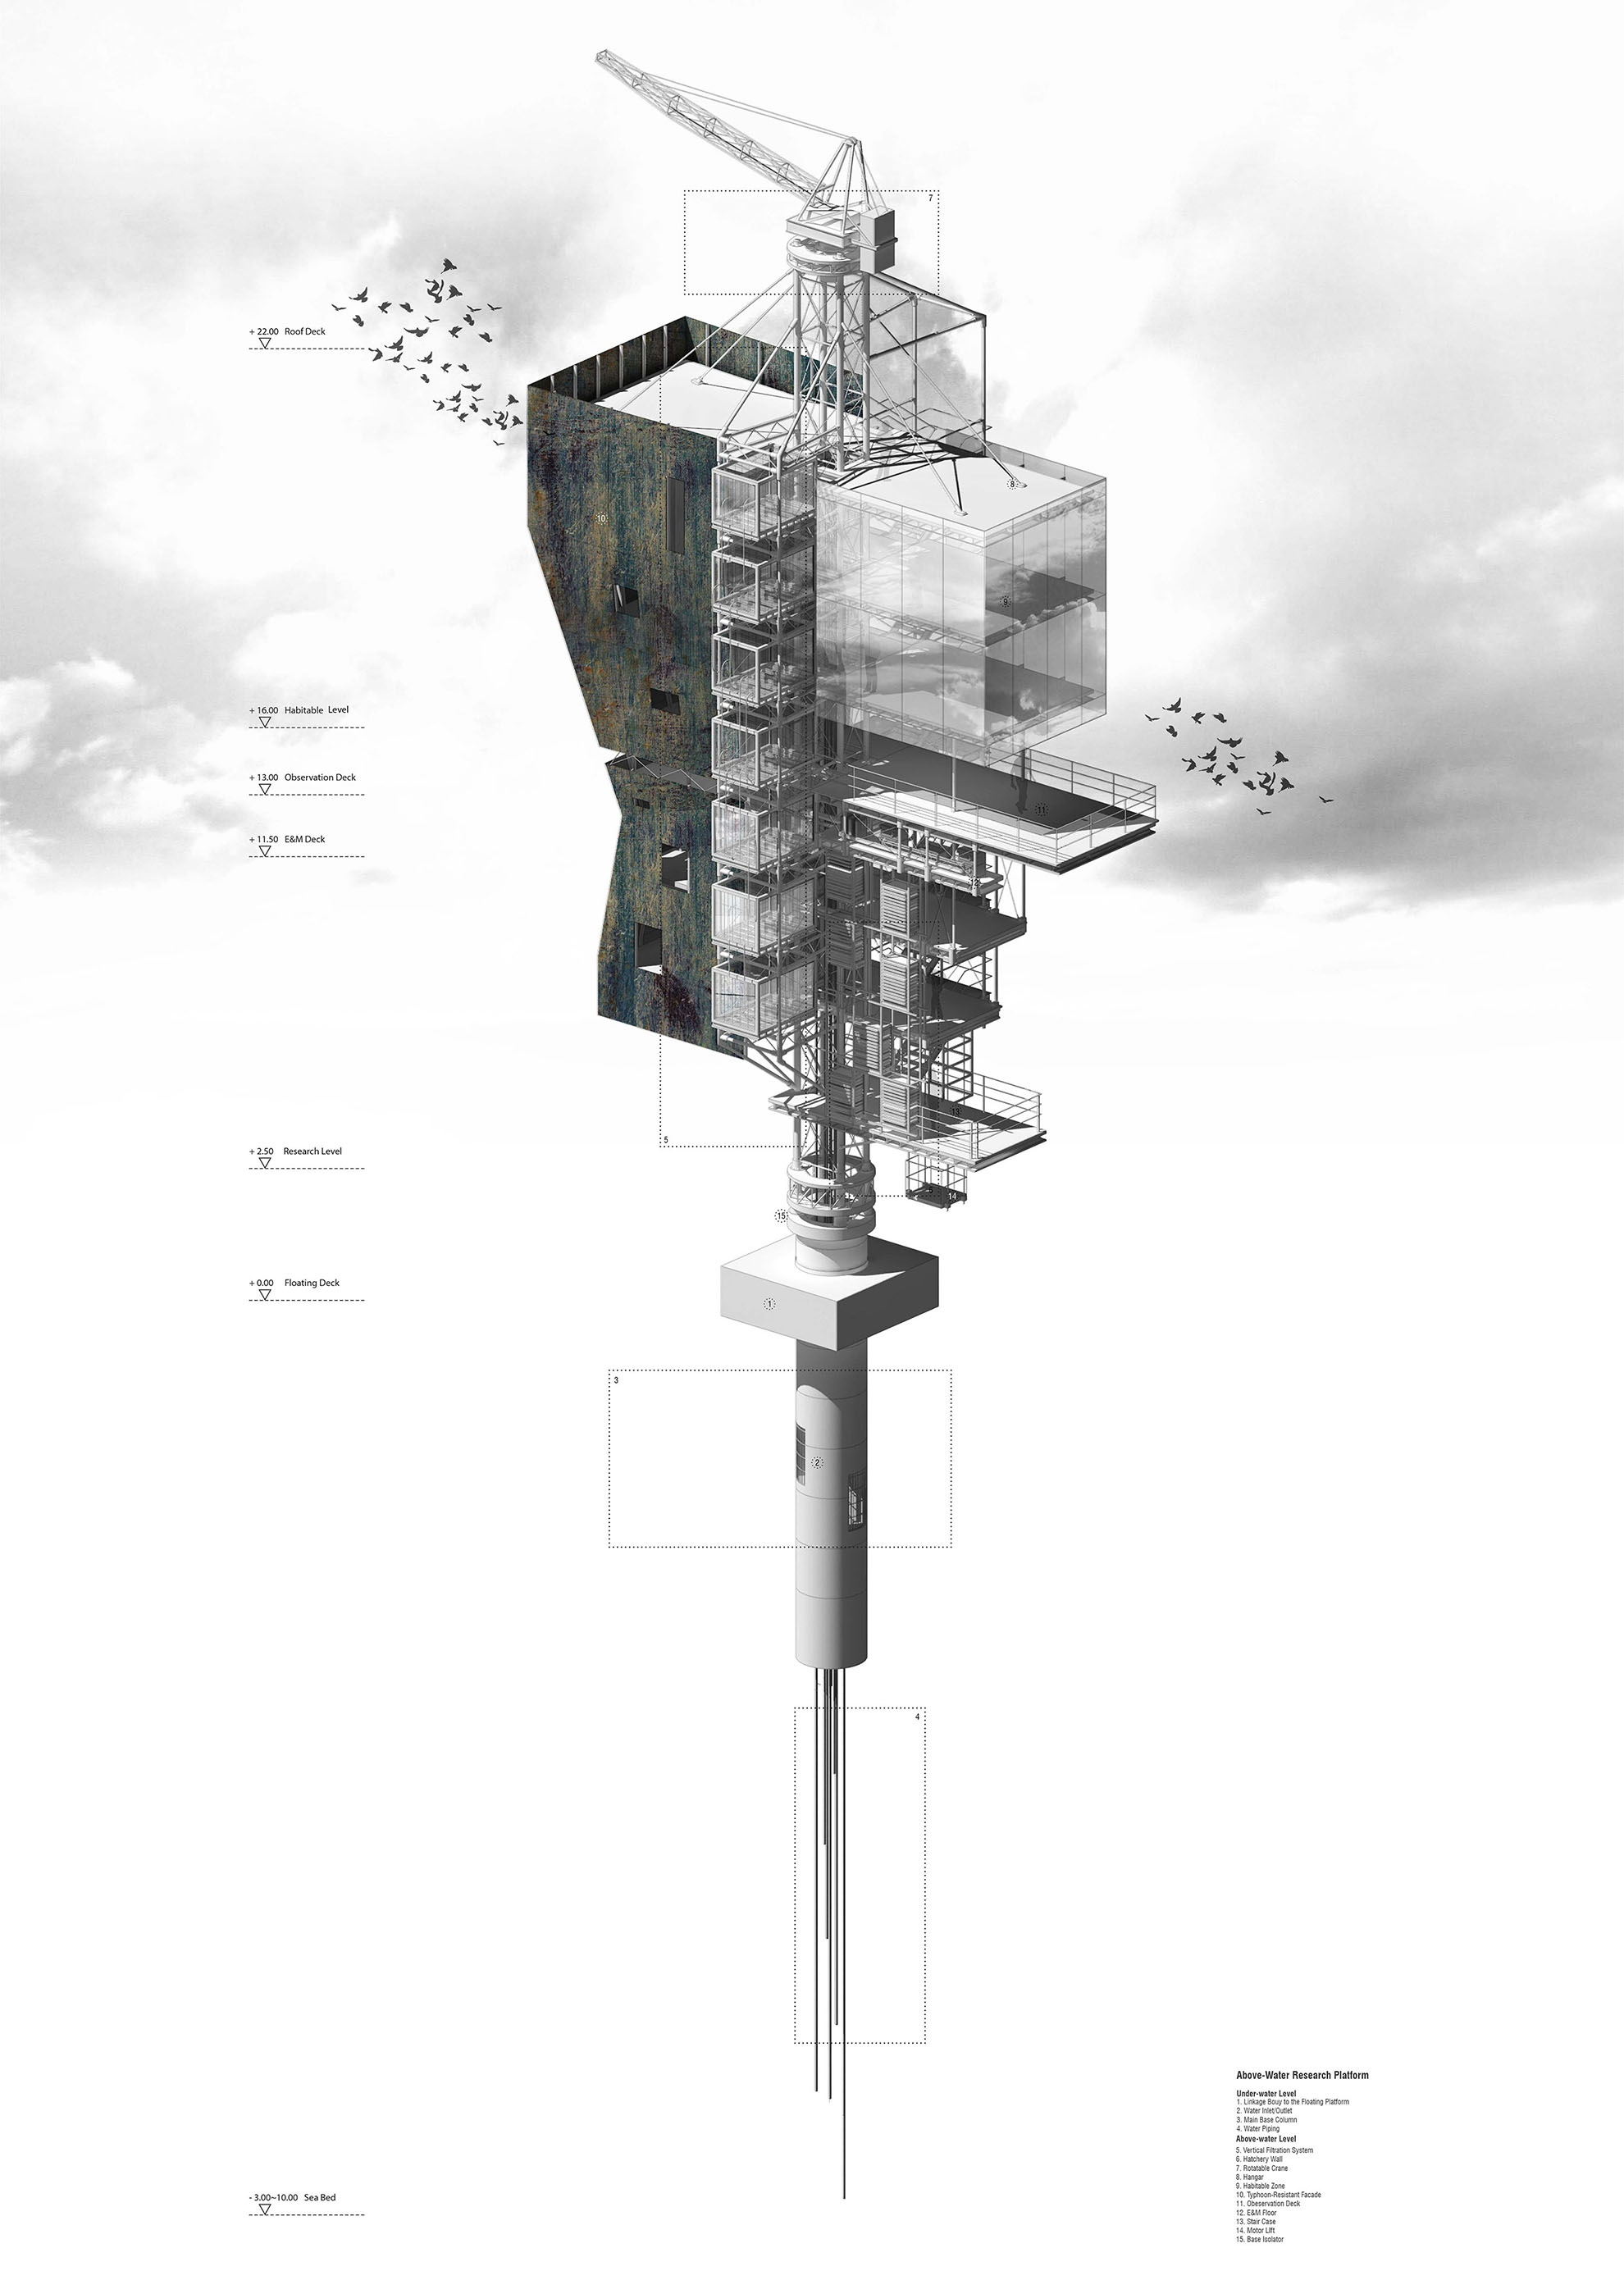 Tang Jieliang's project – 'Land-water Co-habitation – Architecture for Nearshore Development in Relation to Climate Change'